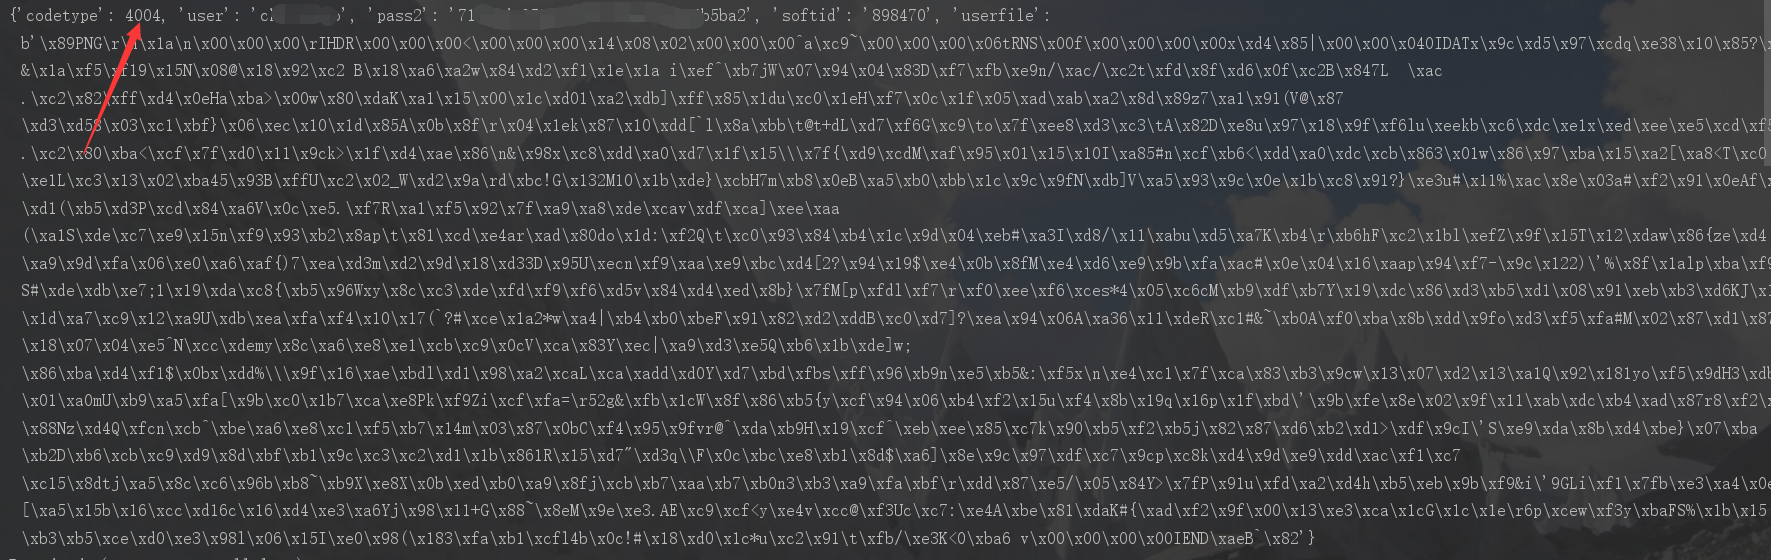 TypeError: Can not serialize value type: <class 'int